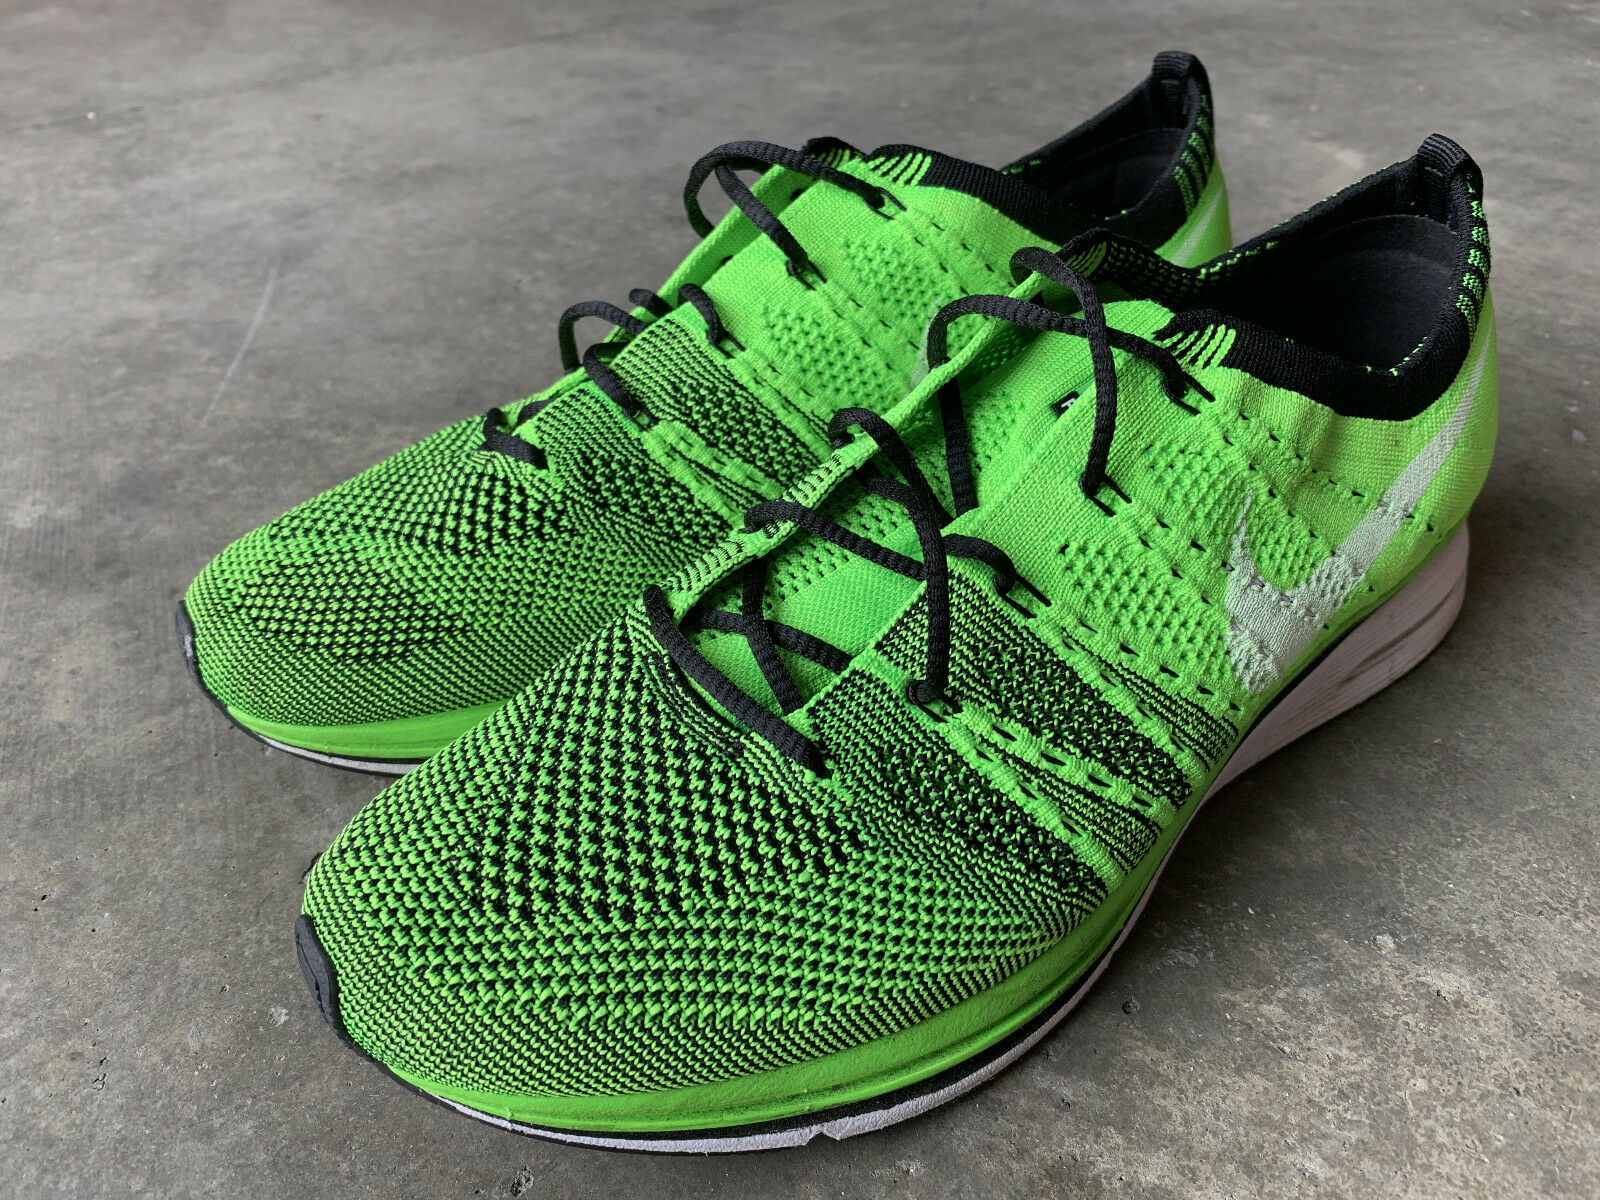 Nike Flyknit Trainer+ Electric Green Size 9 532984 301